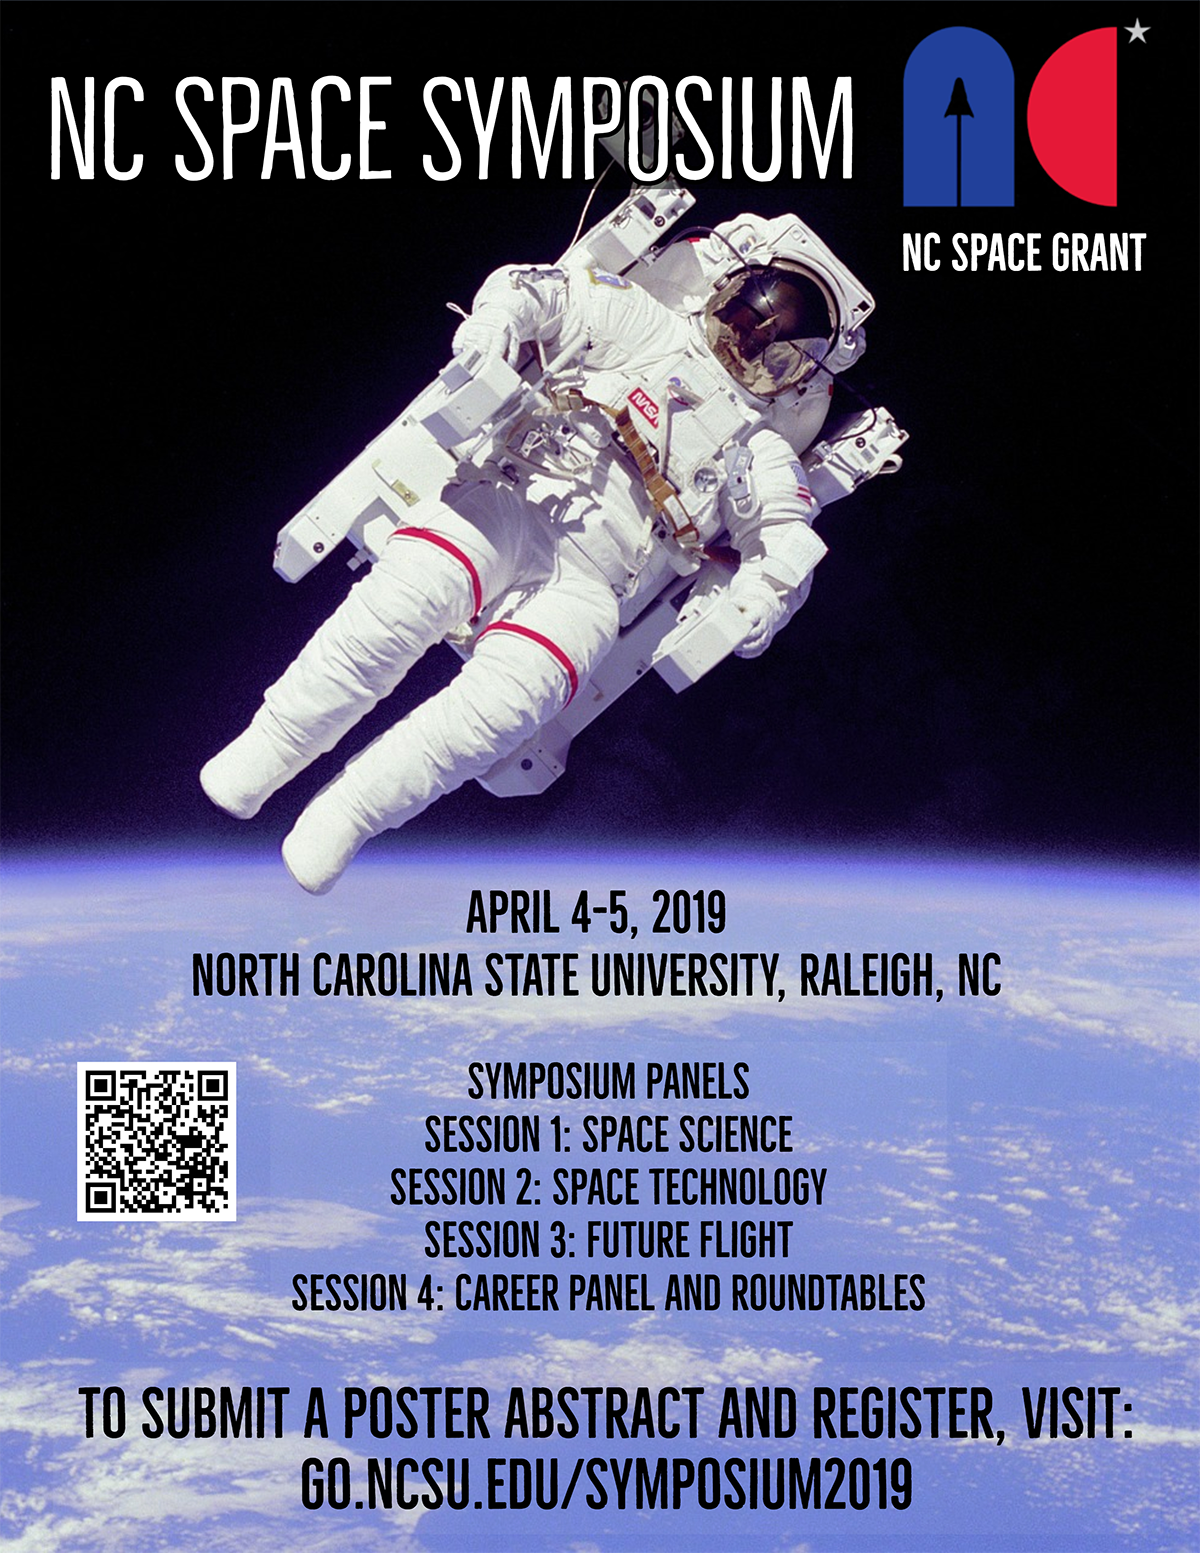 NC Space Symposium